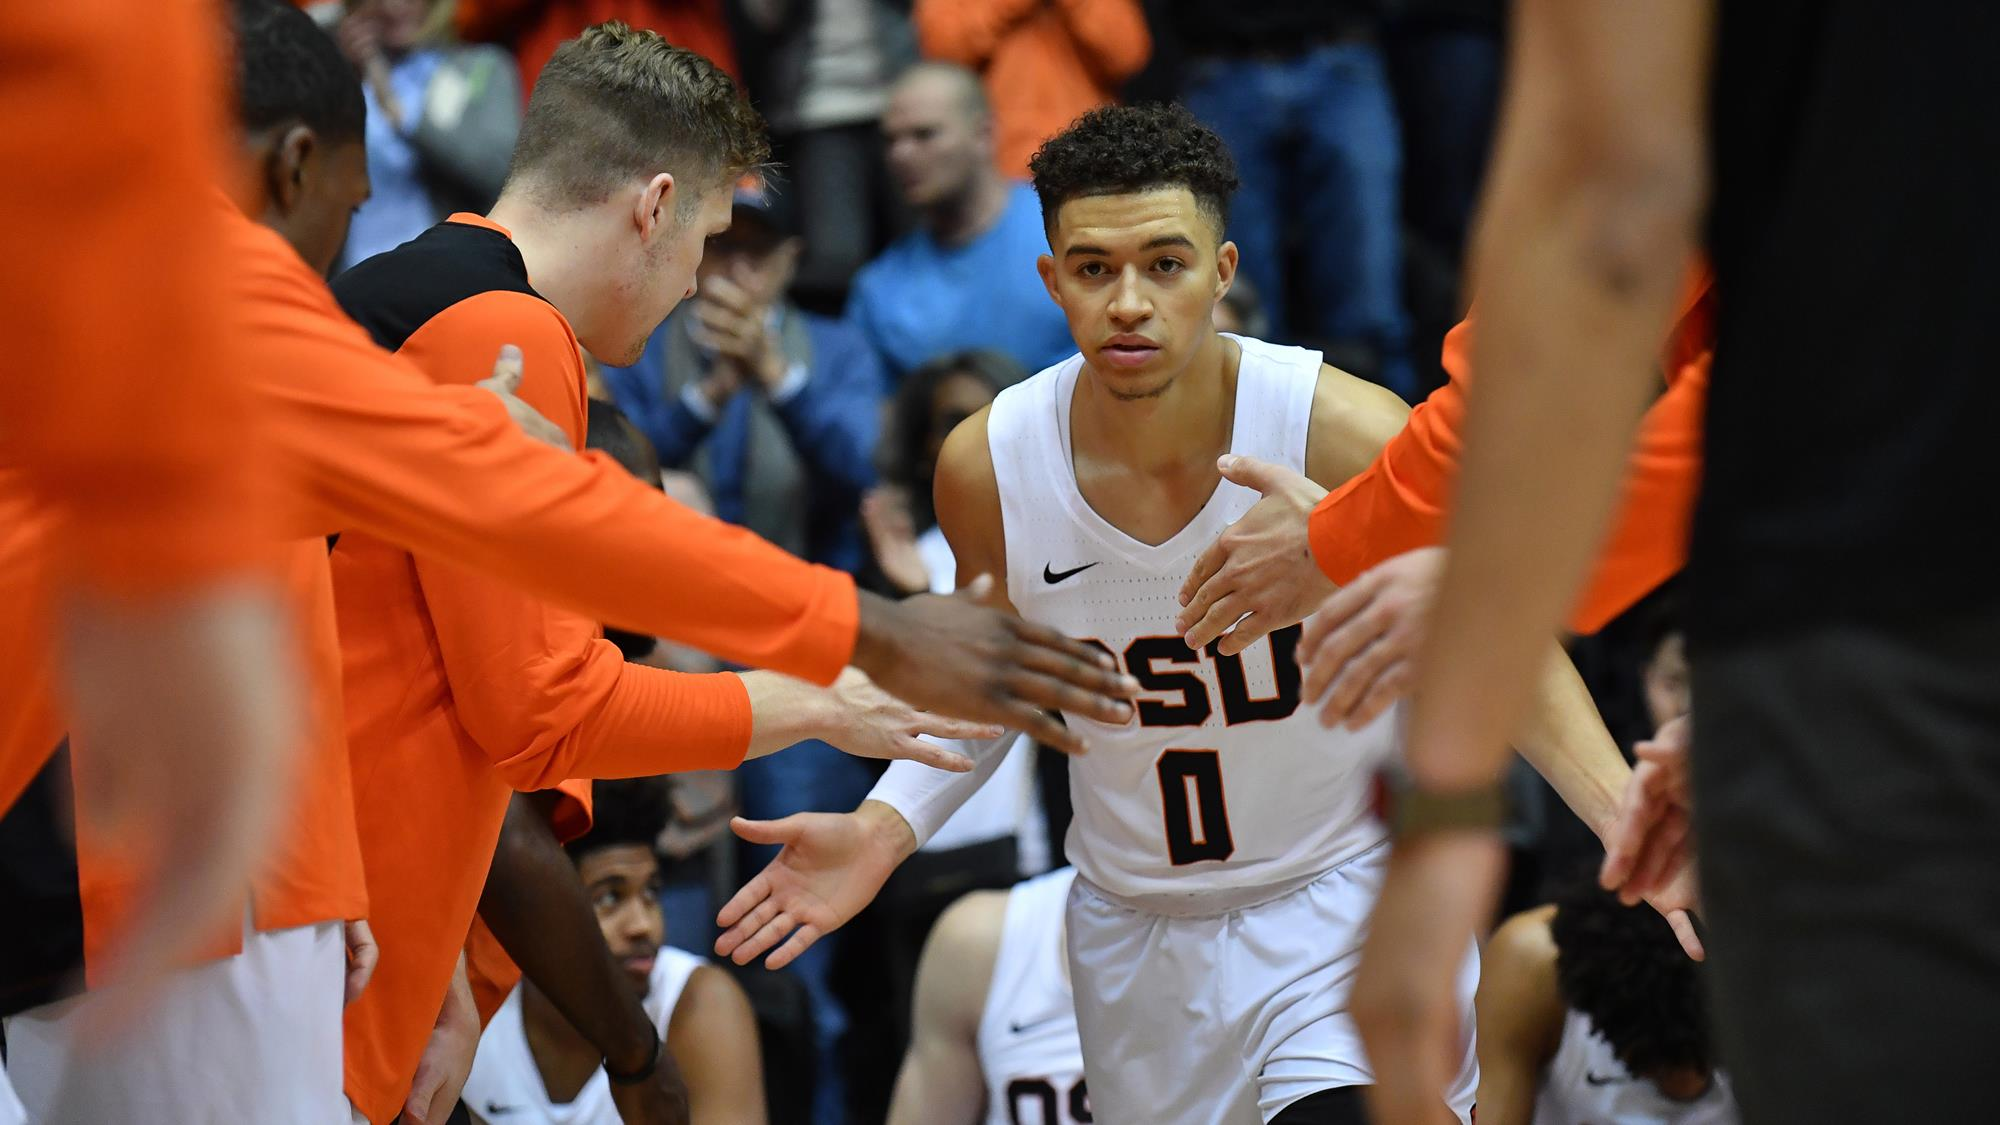 f1314b92b Beavers Prepared For Tilt With 49ers - Oregon State University Athletics